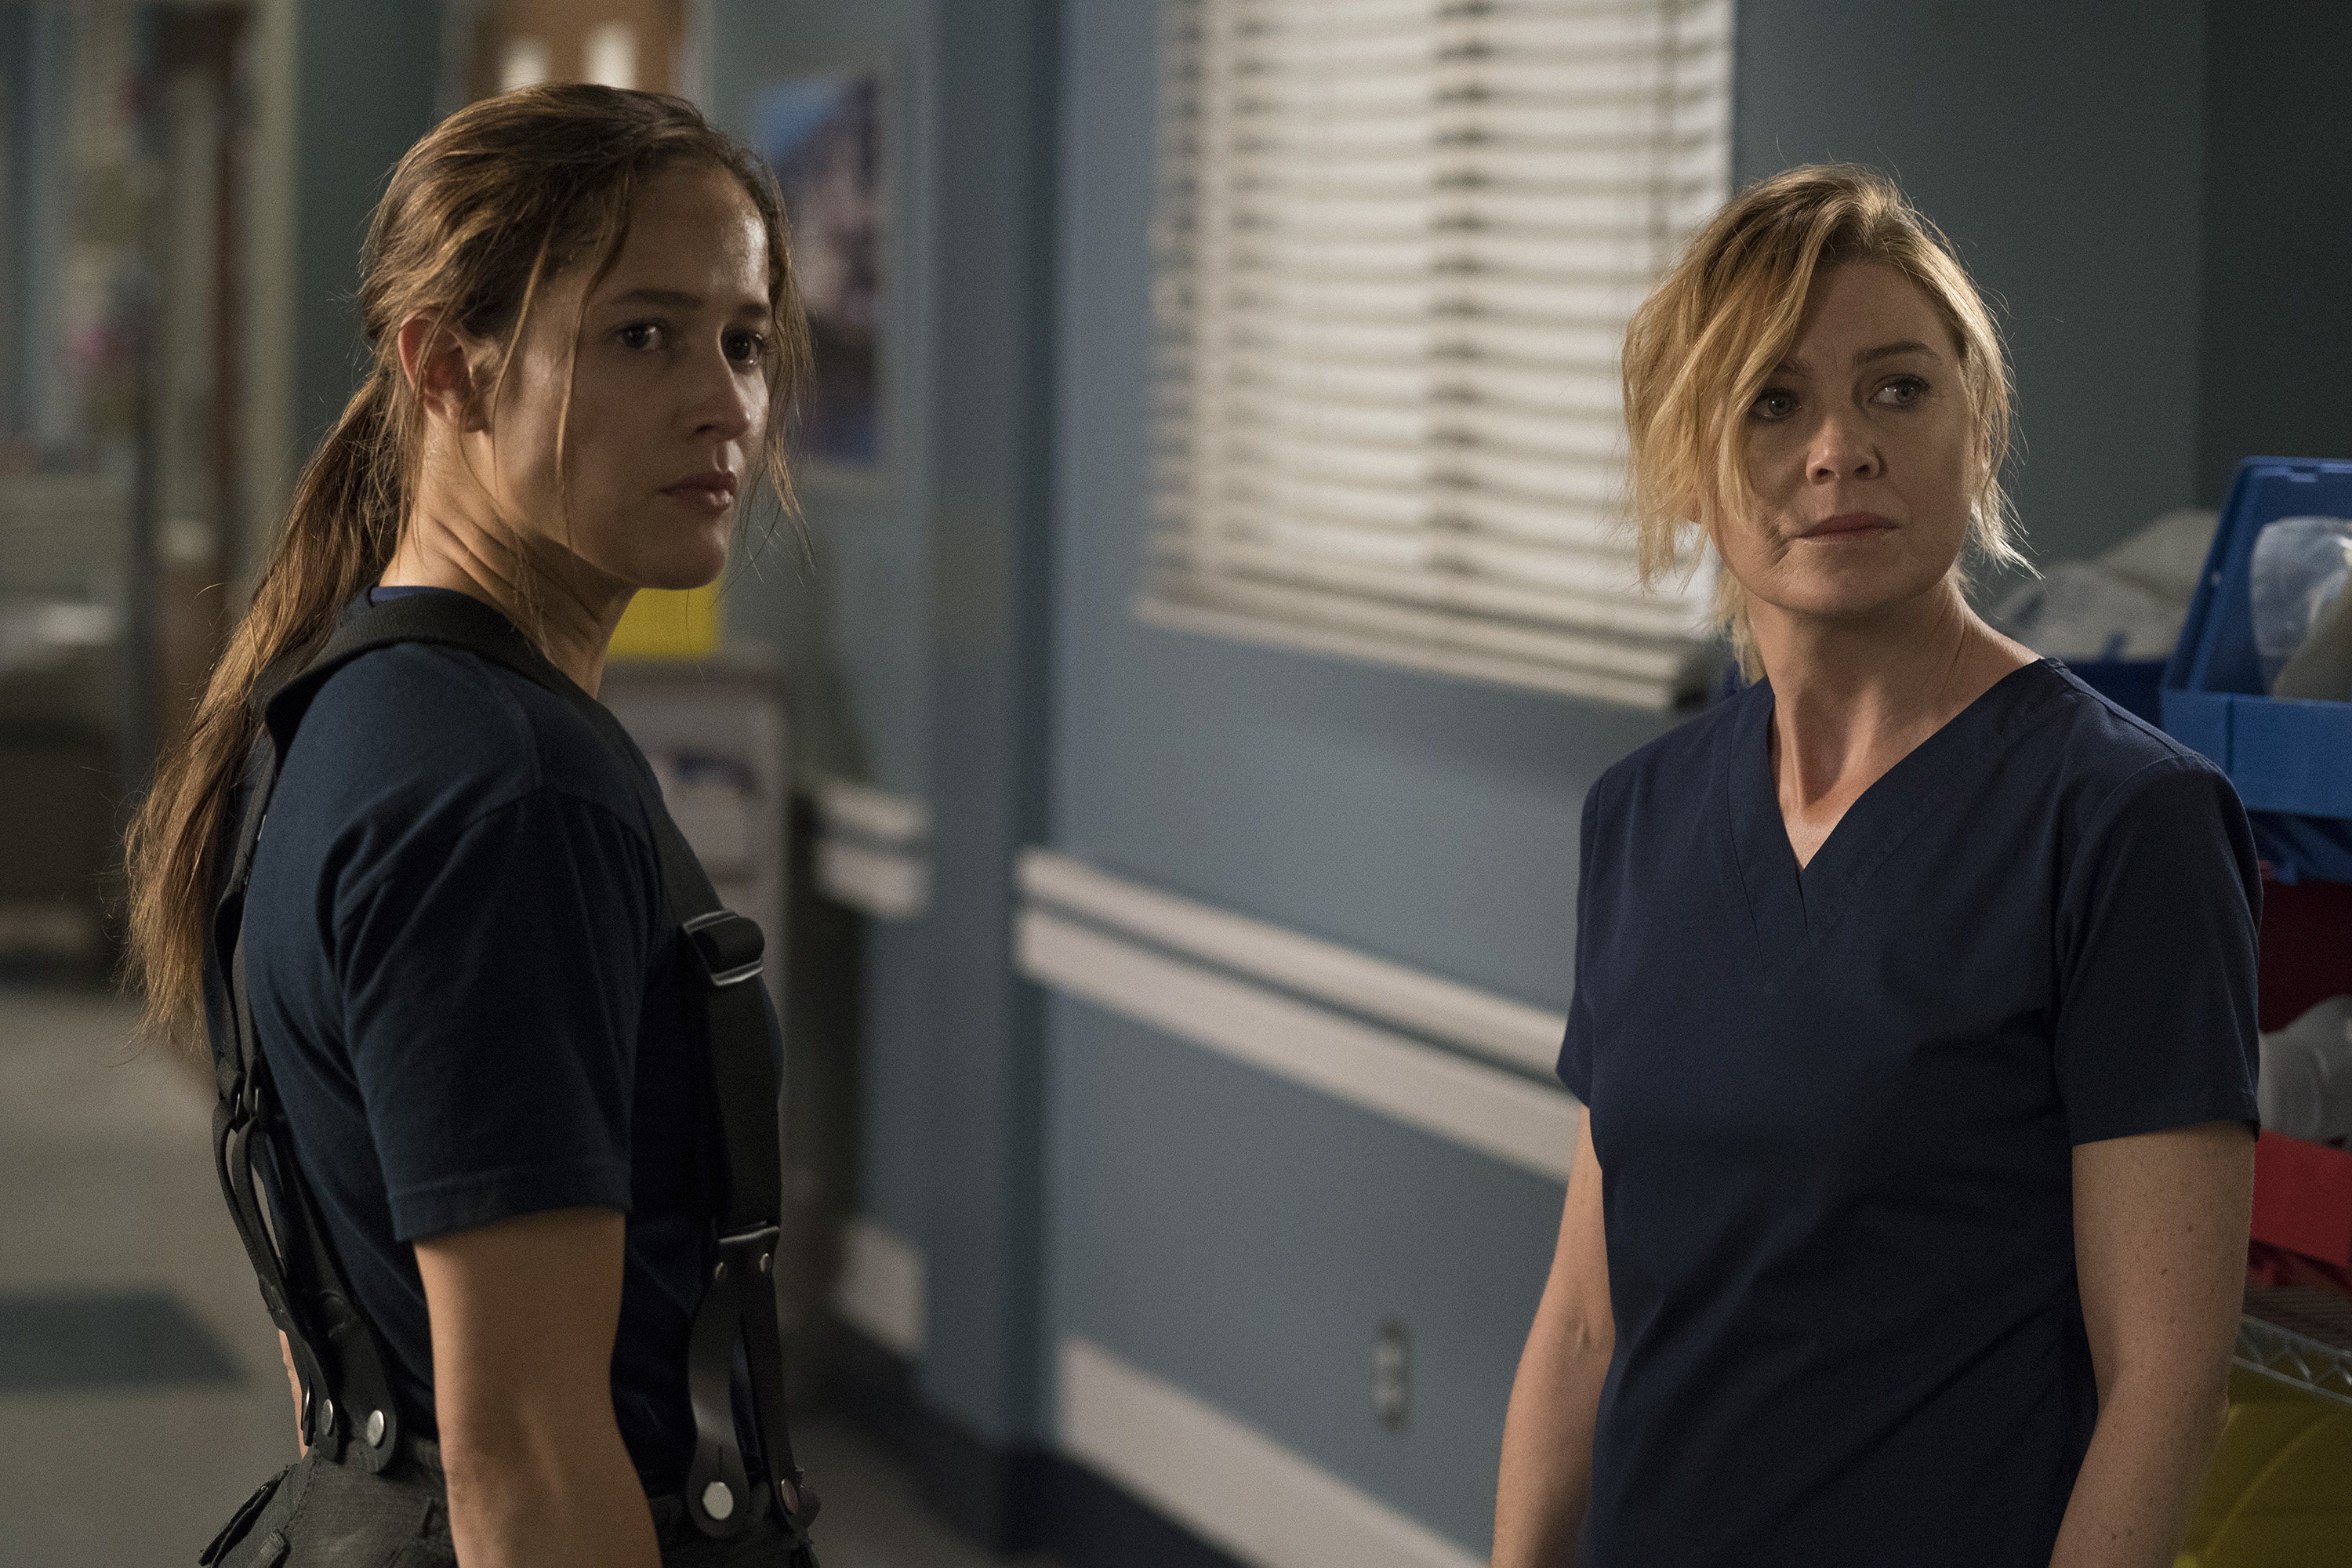 """Station 19's"" Andy Herrera (Jaina Lee Ortiz) and ""Grey's Anatomy's"" Meredith Grey (Ellen Pompeo)"